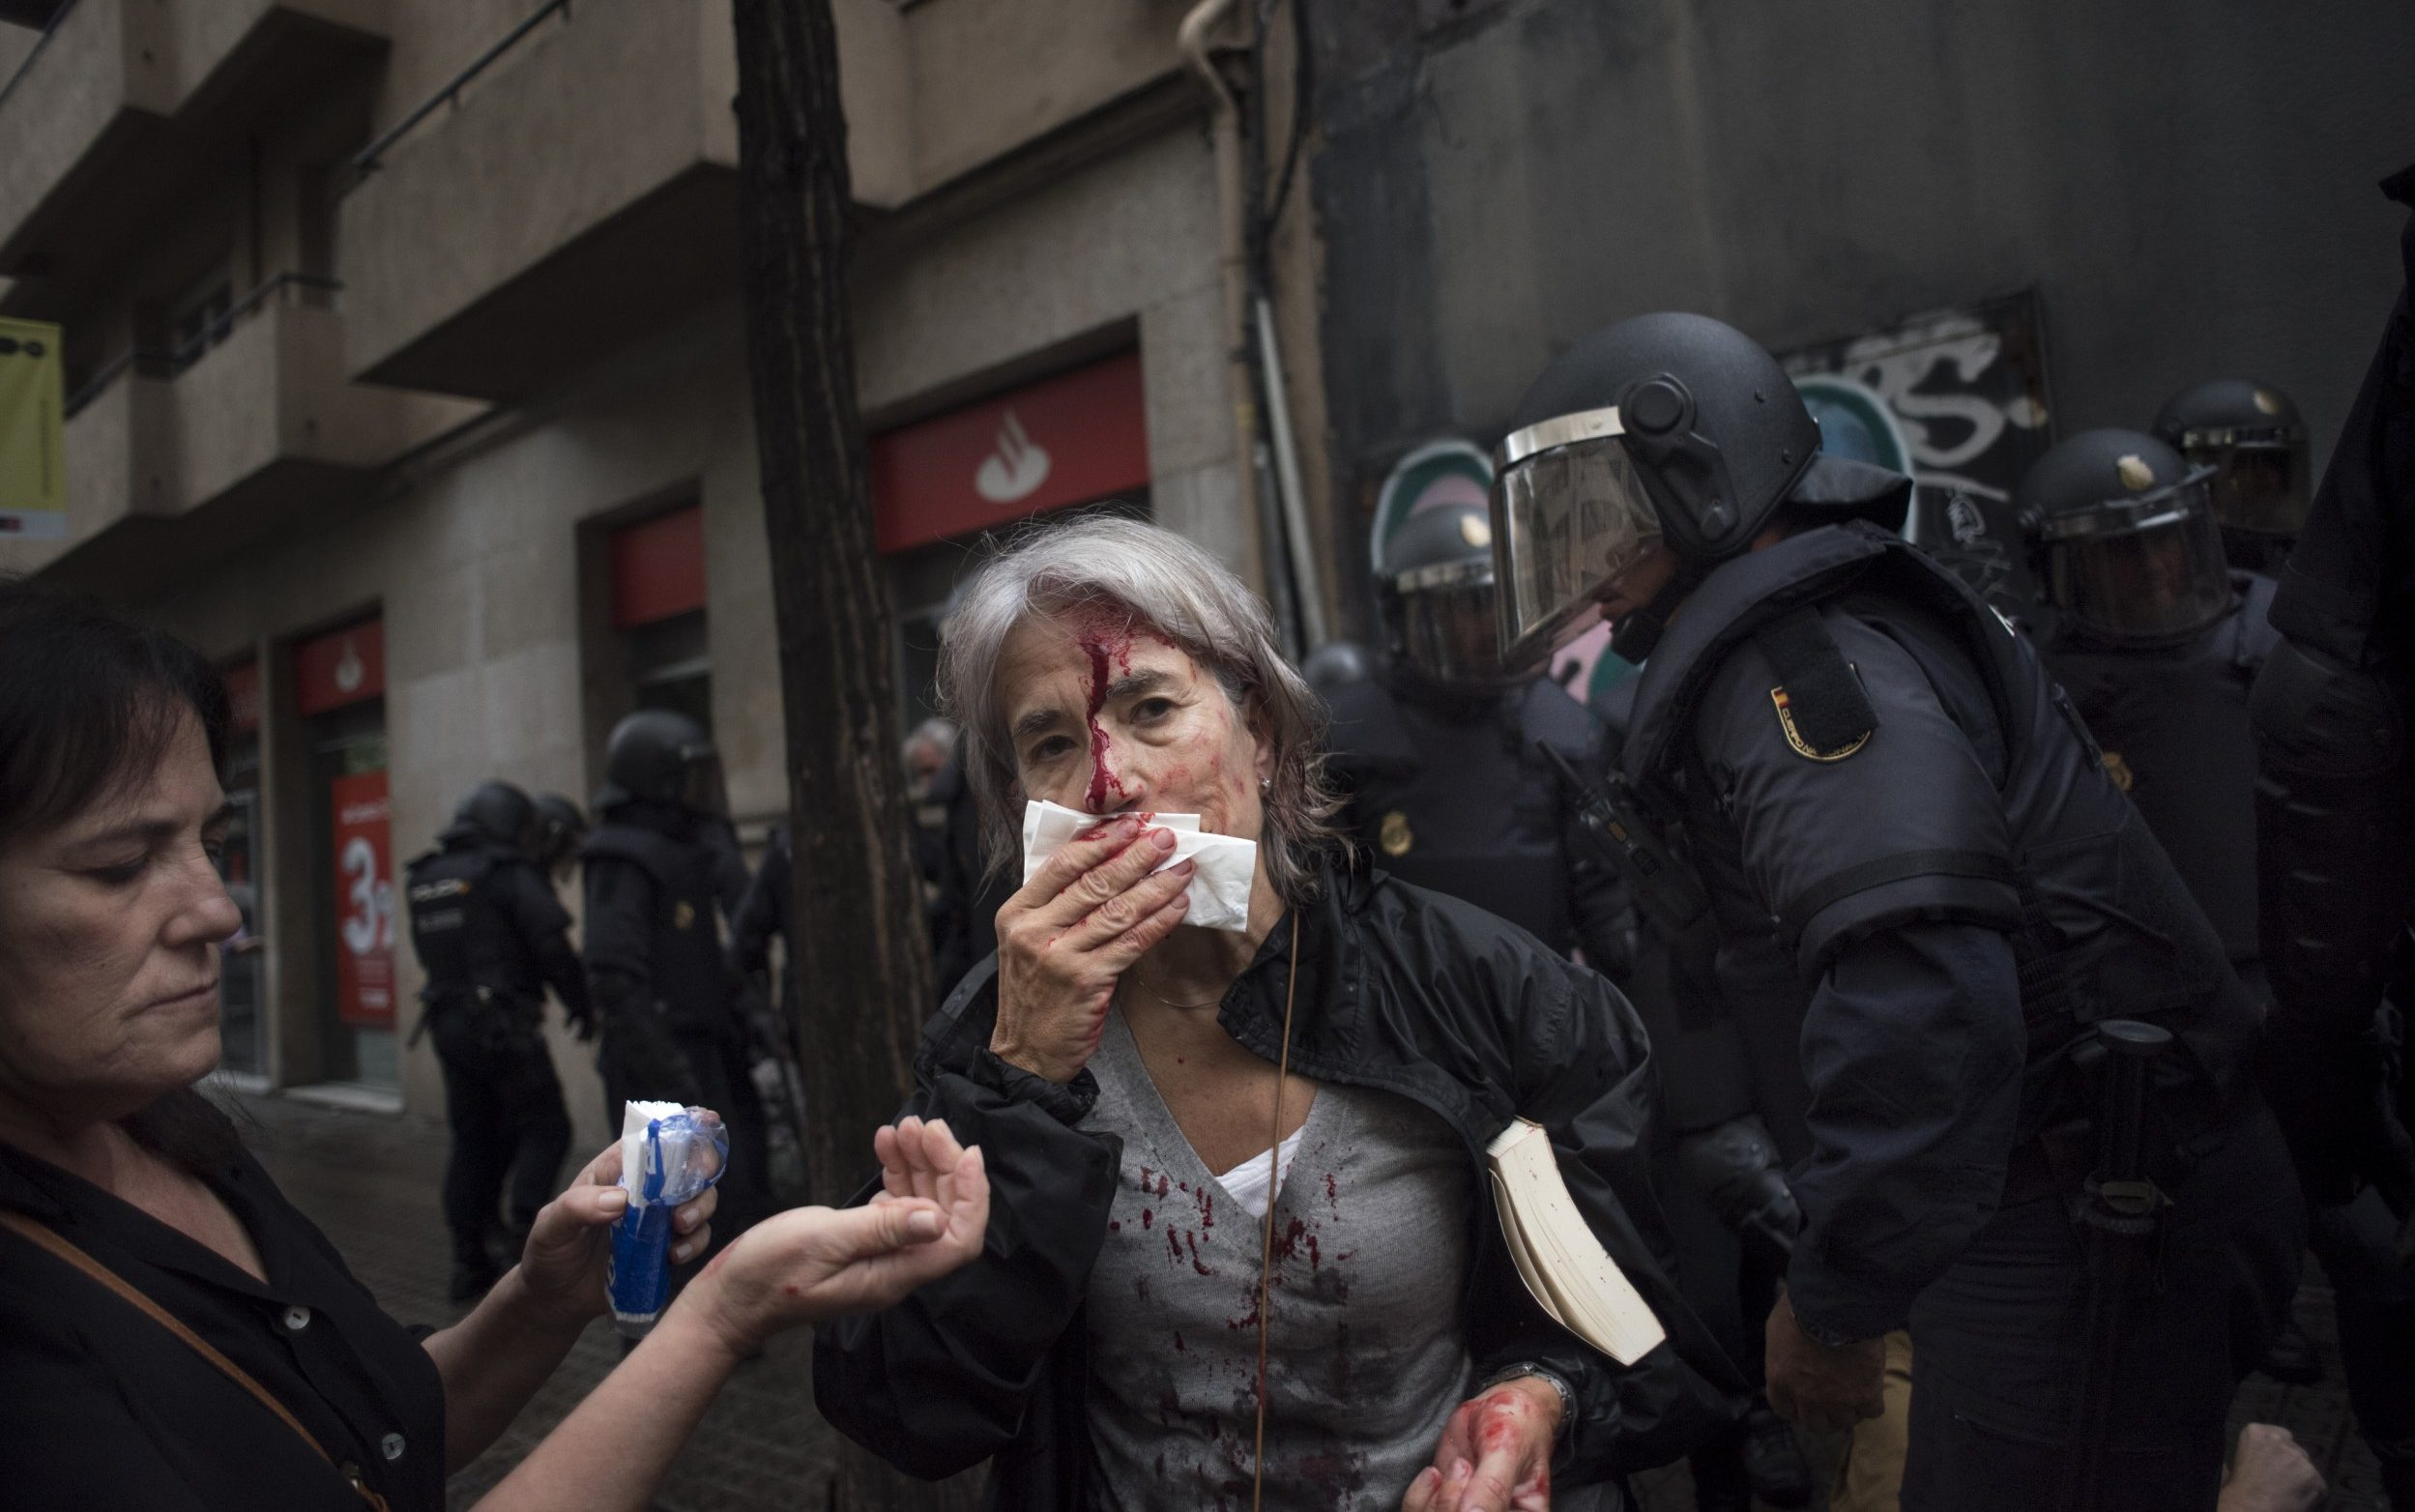 A woman tends to her injuries in front of riot police near a school being used as a polling station